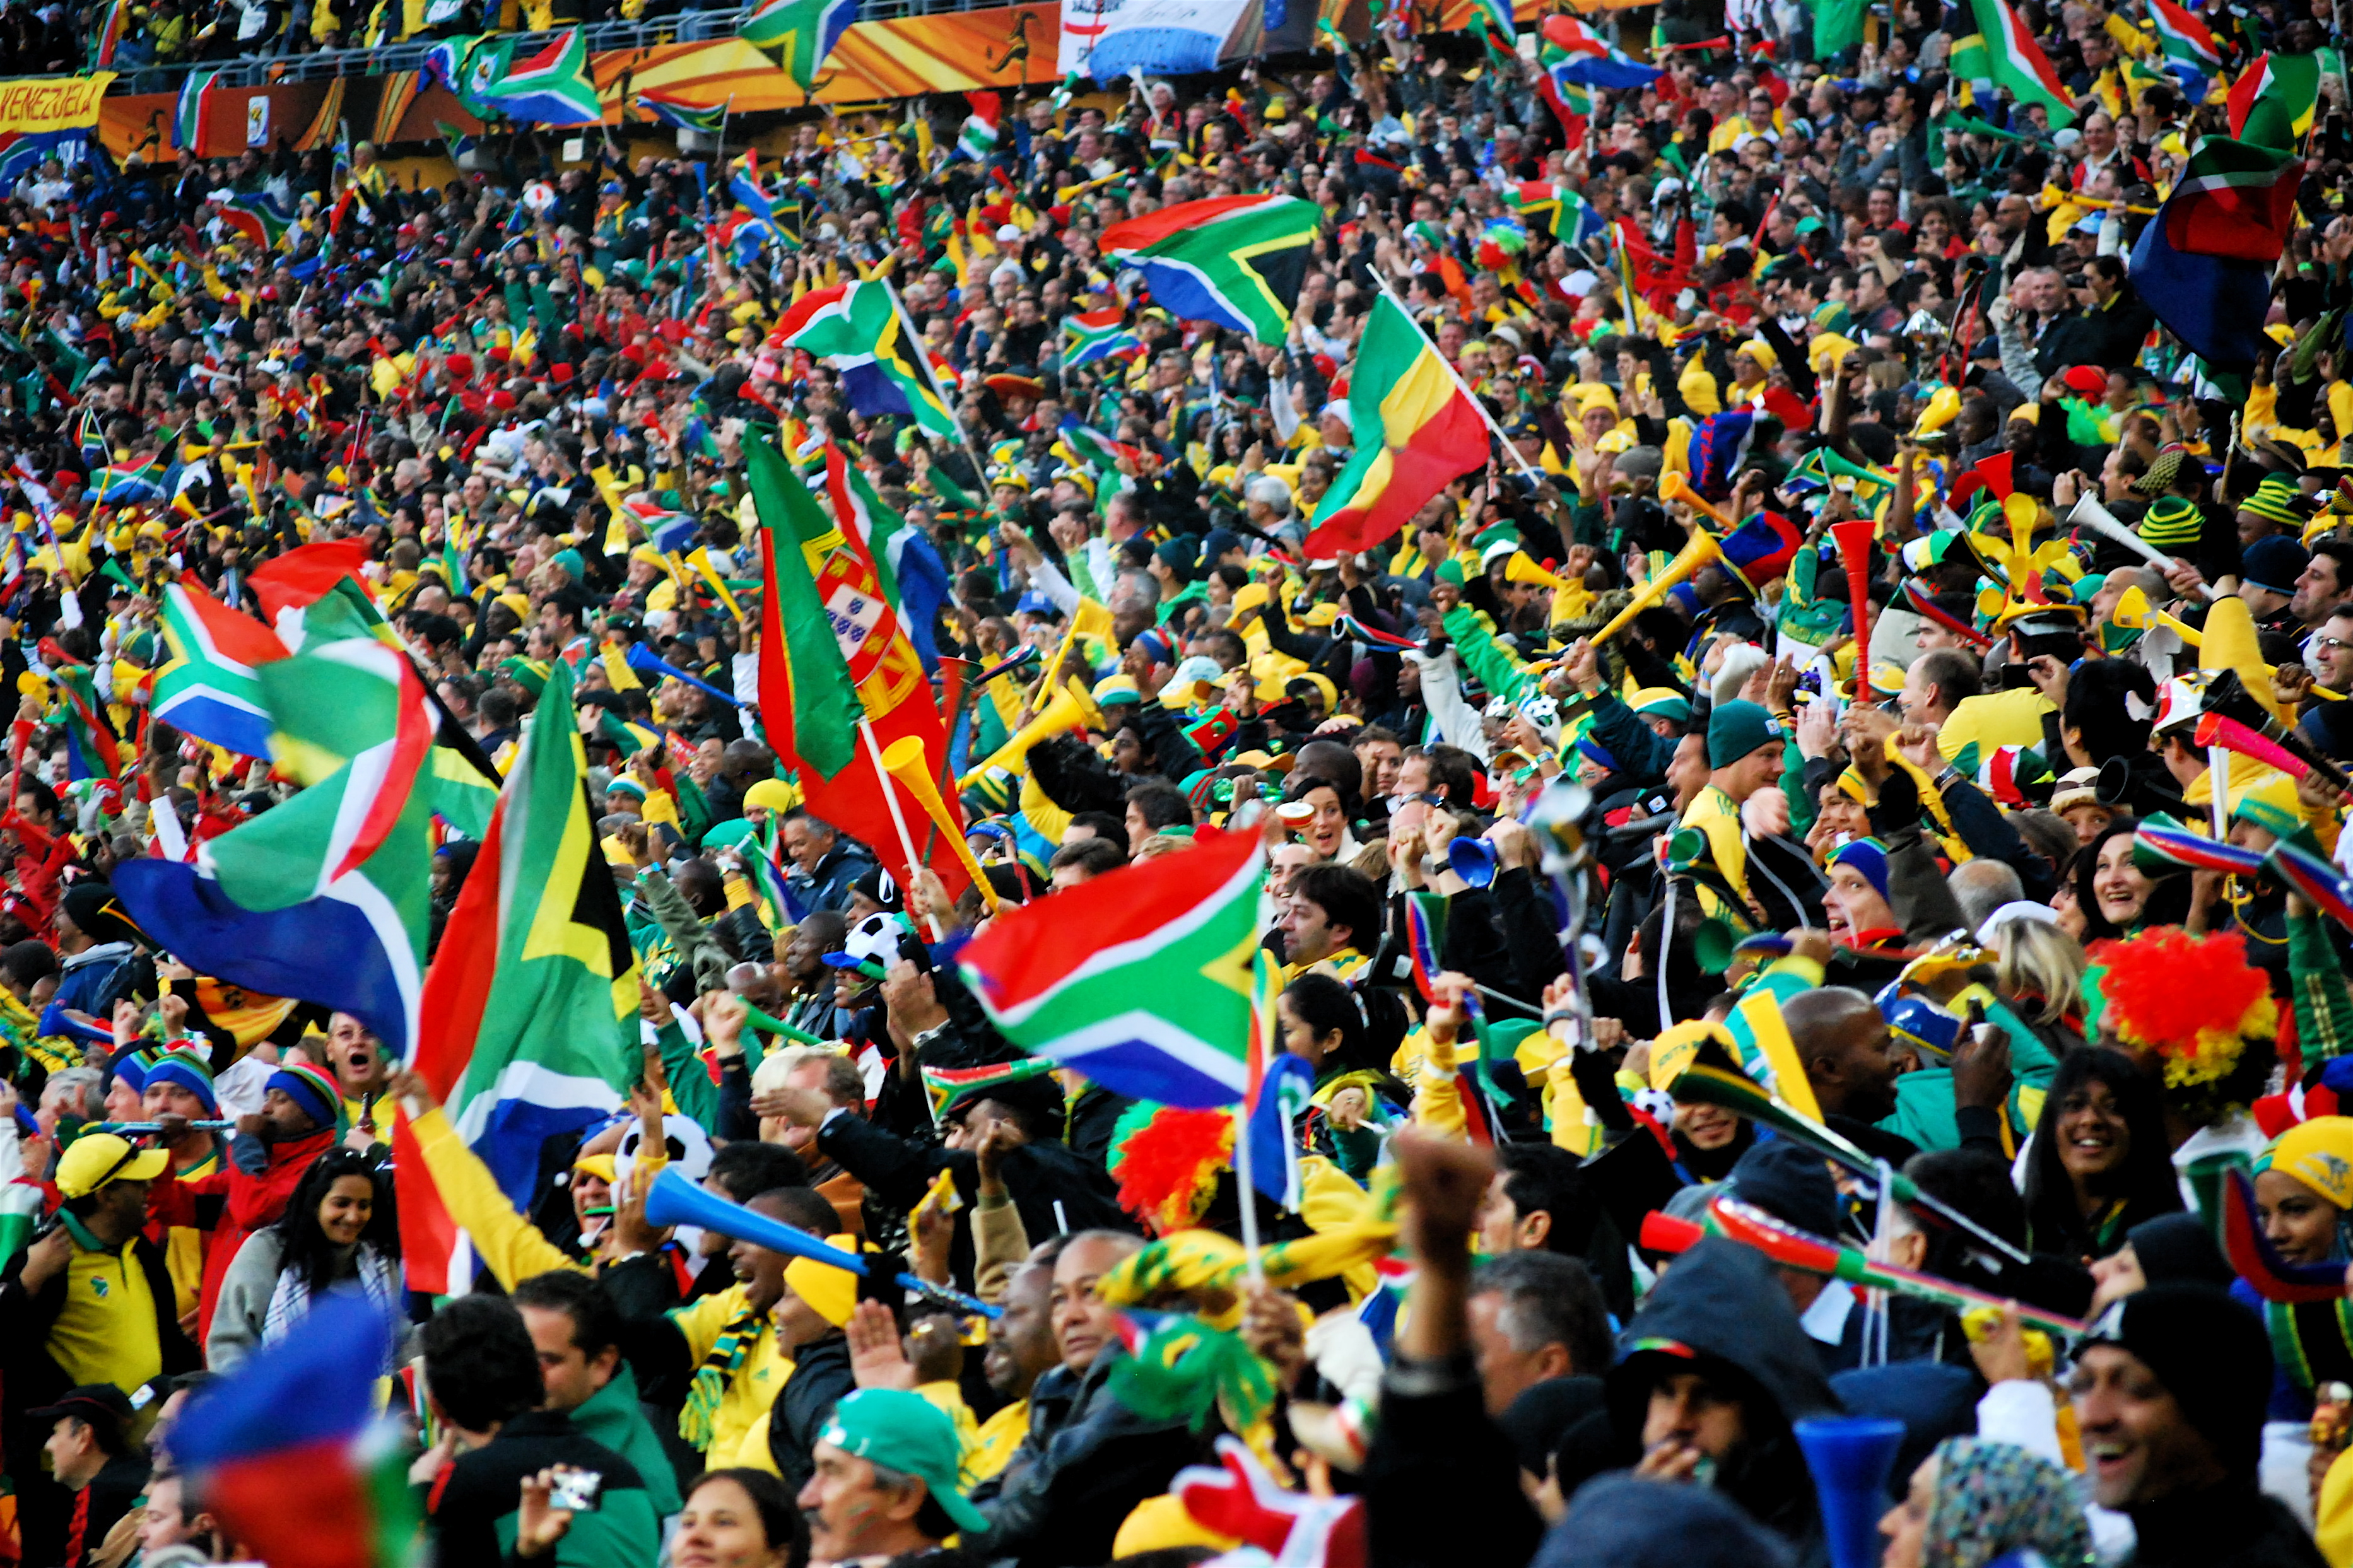 HQ 2010 FIFA World Cup South Africa Wallpapers | File 4361.92Kb